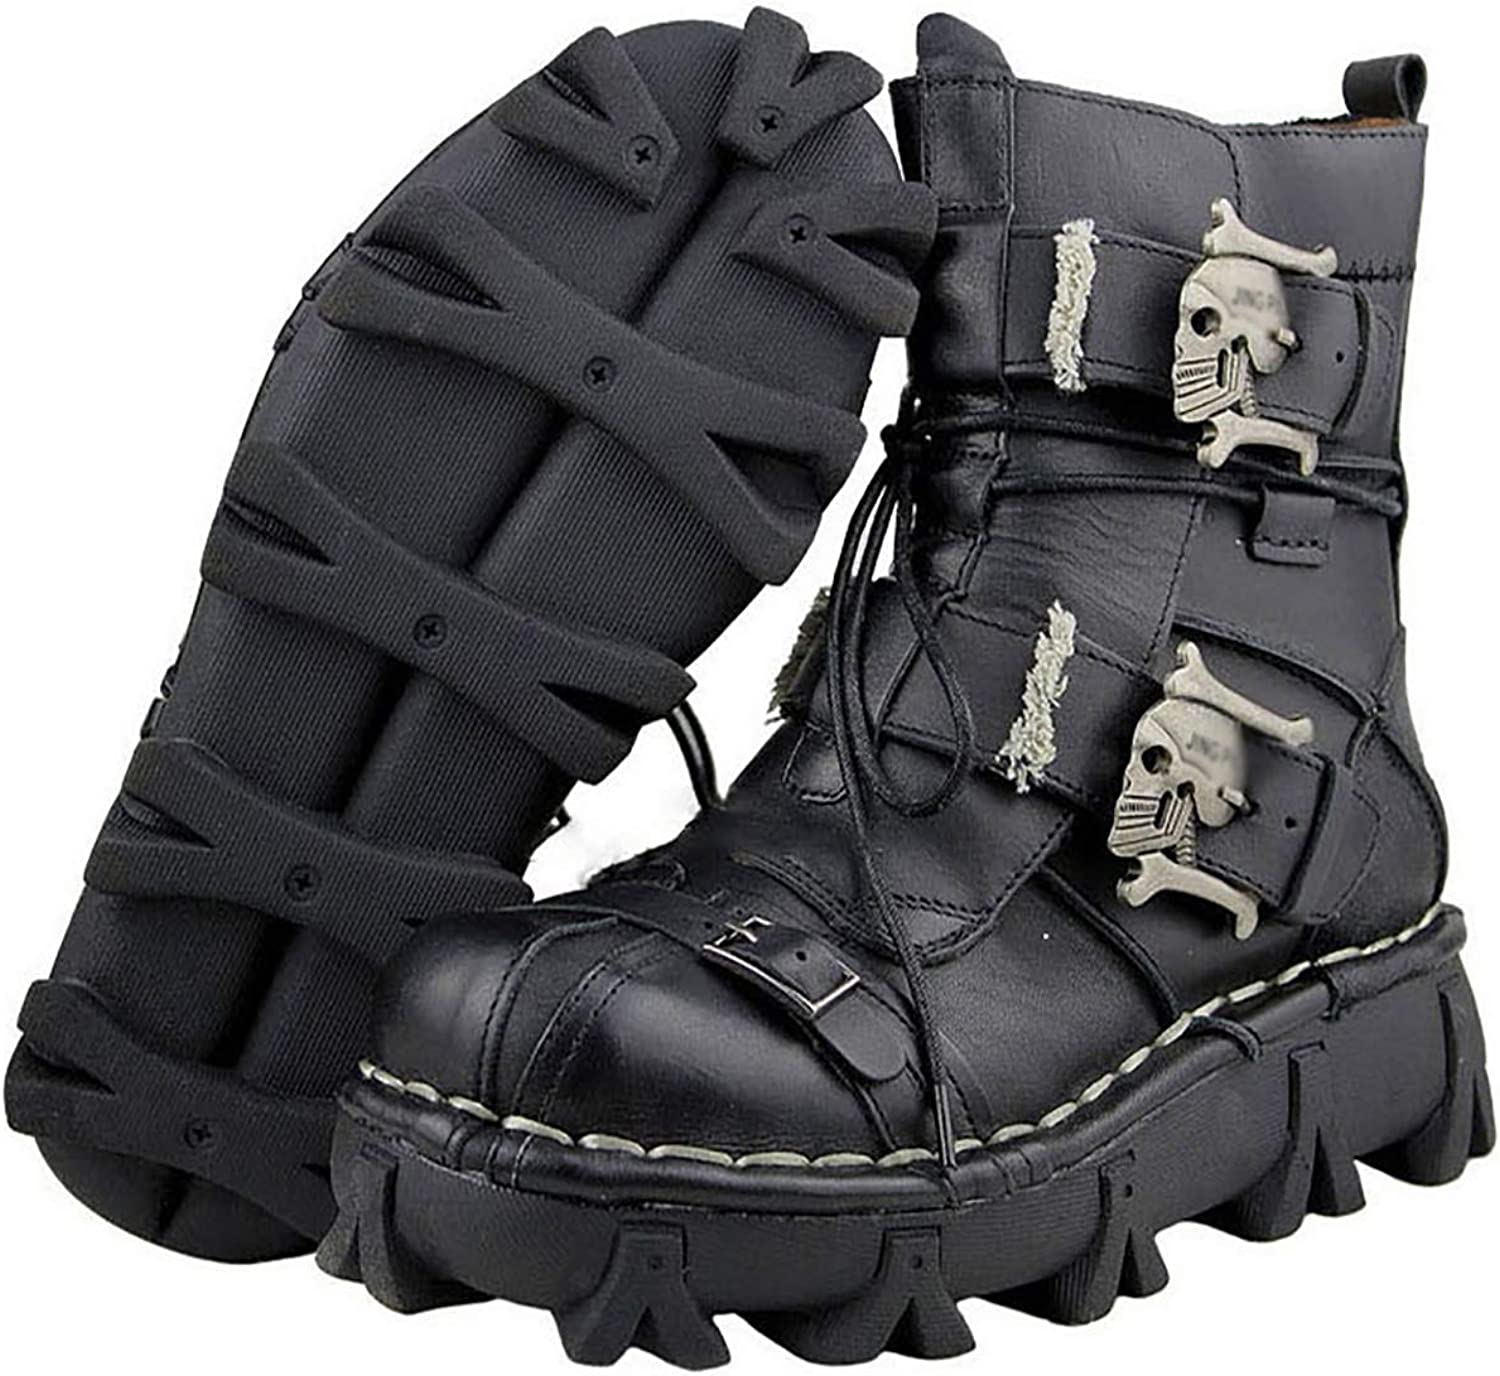 Men's high-top Motorcycle Rider Boots, Ghost Head Martin Boots, lace Leather shoes Desert shoes,Black,48